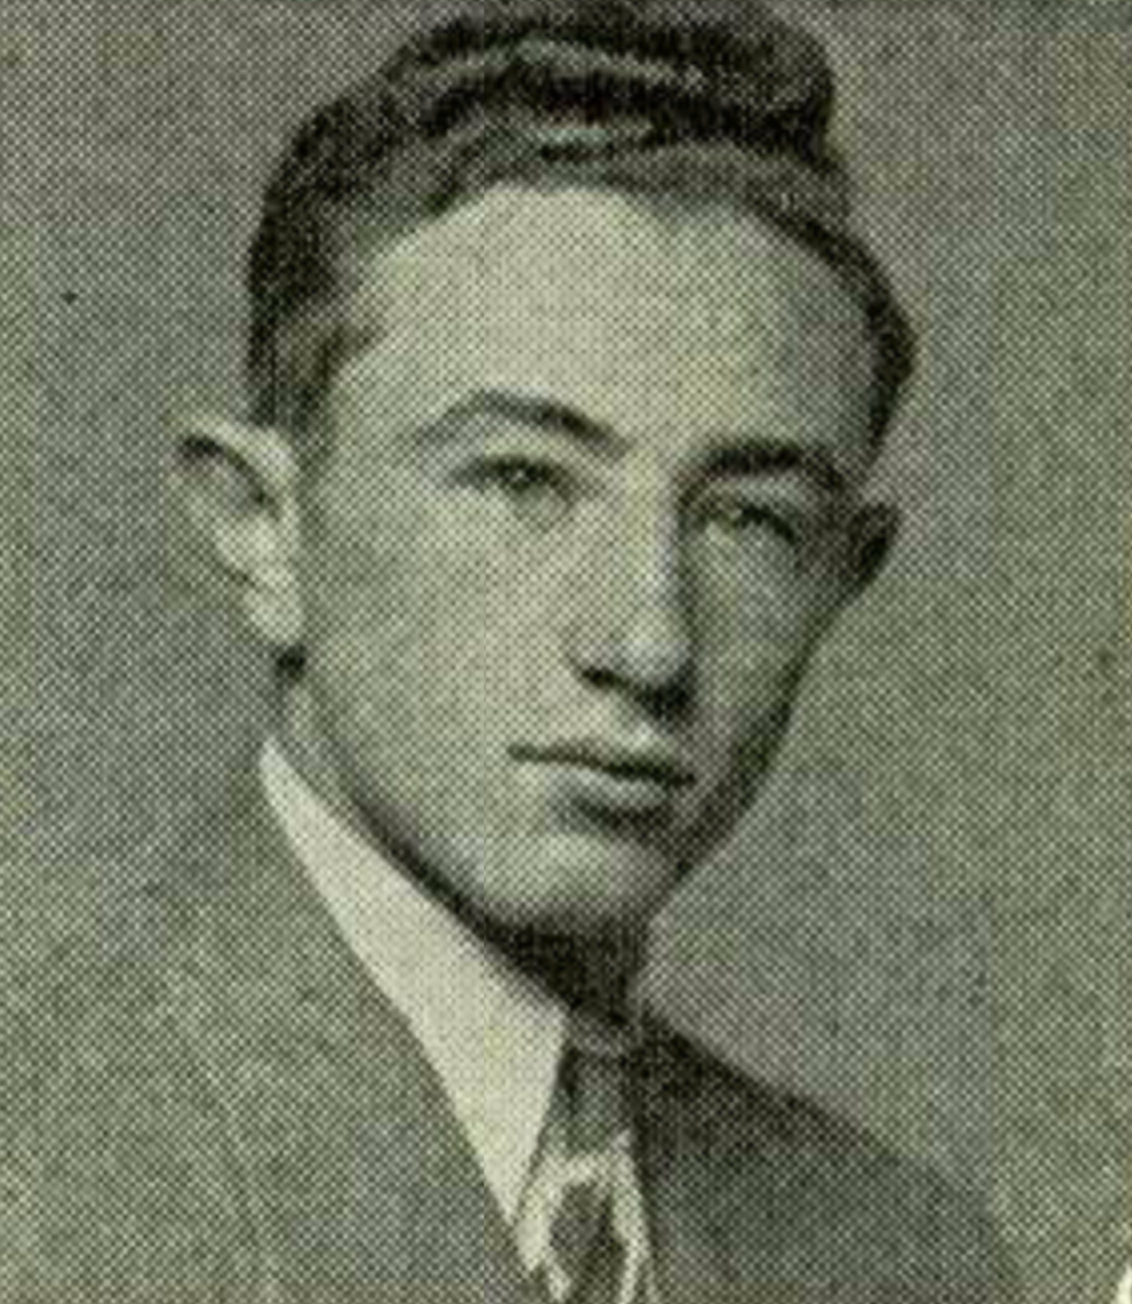 Donald Bosswick in 1947.